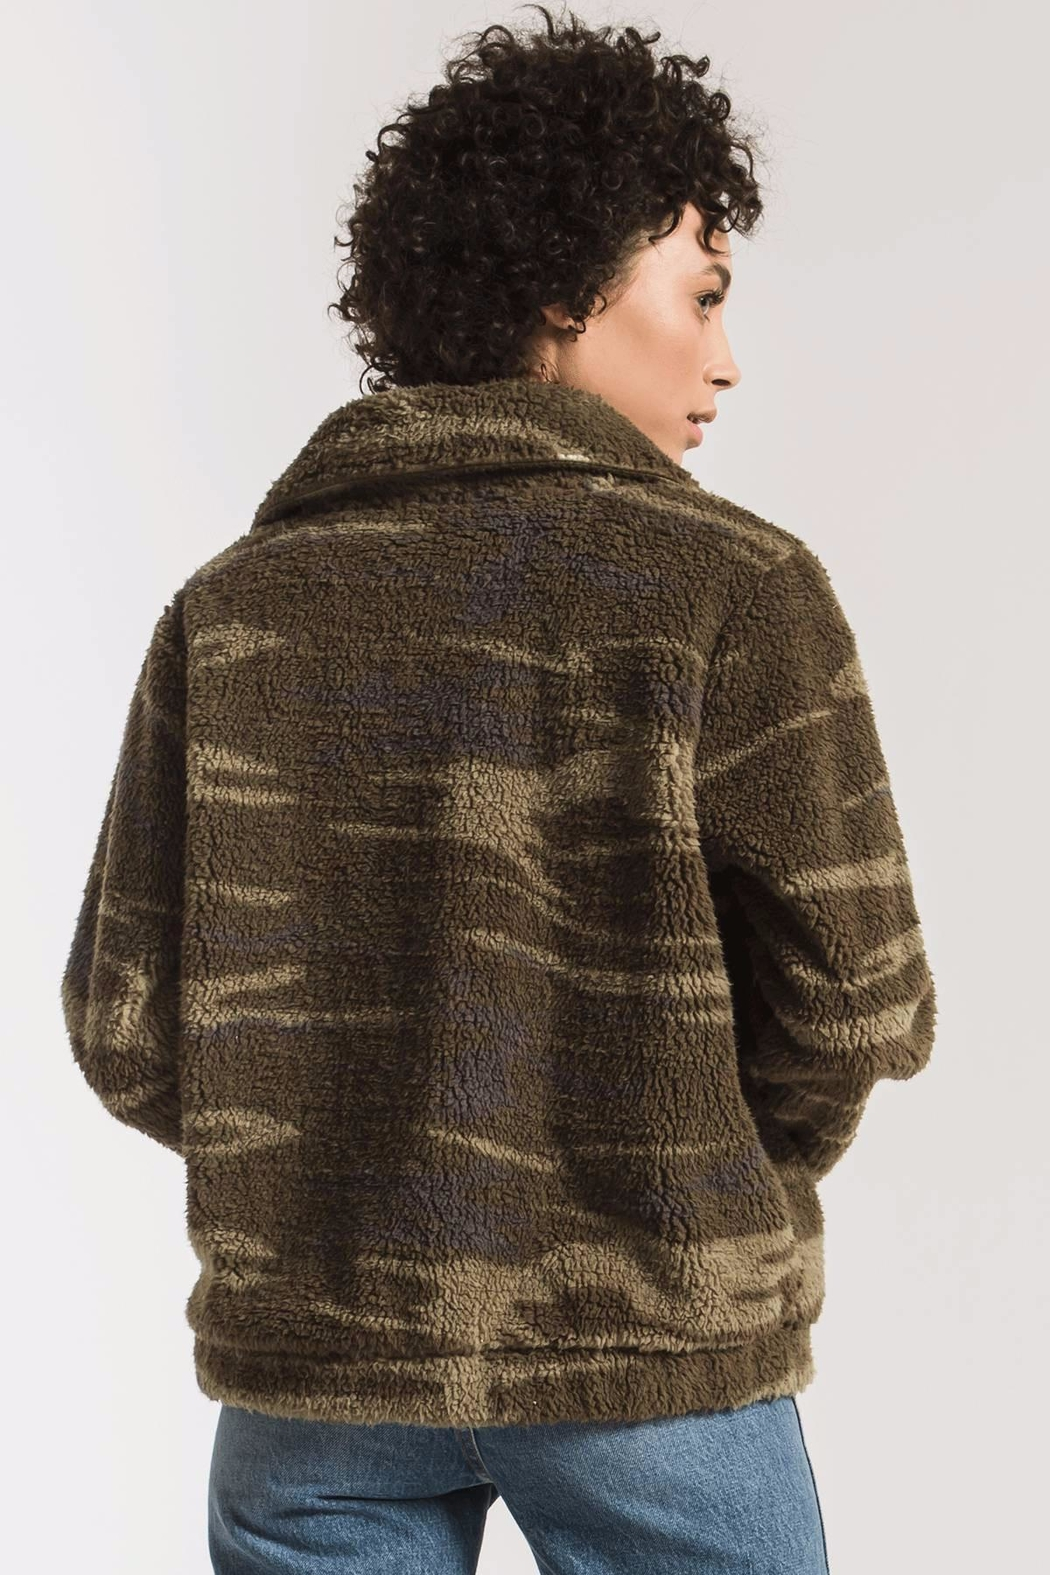 z supply Camo Sherpa Jacket - Side Cropped Image